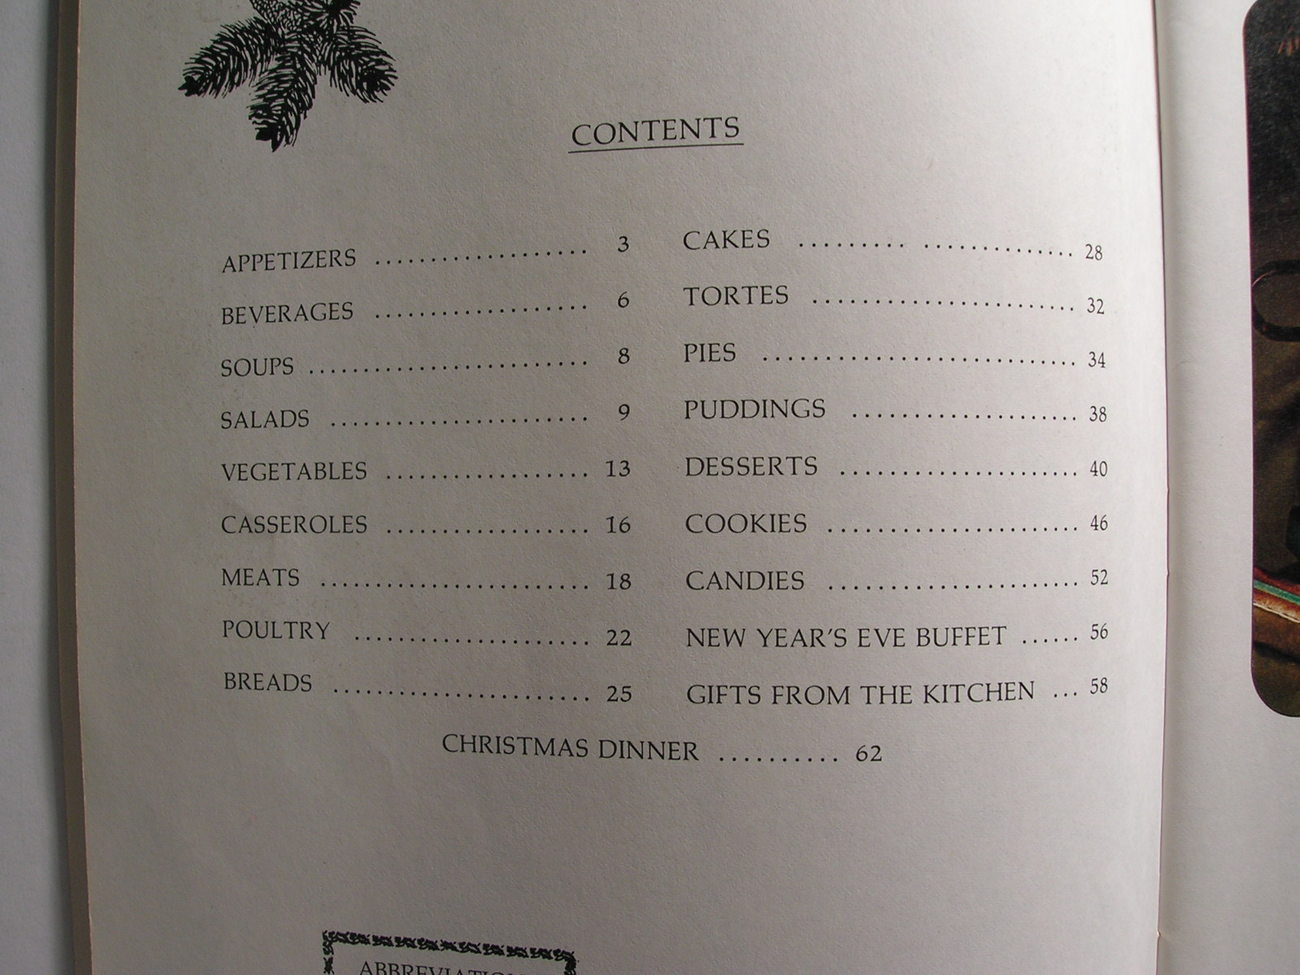 The Ideals Christmas Cookbook